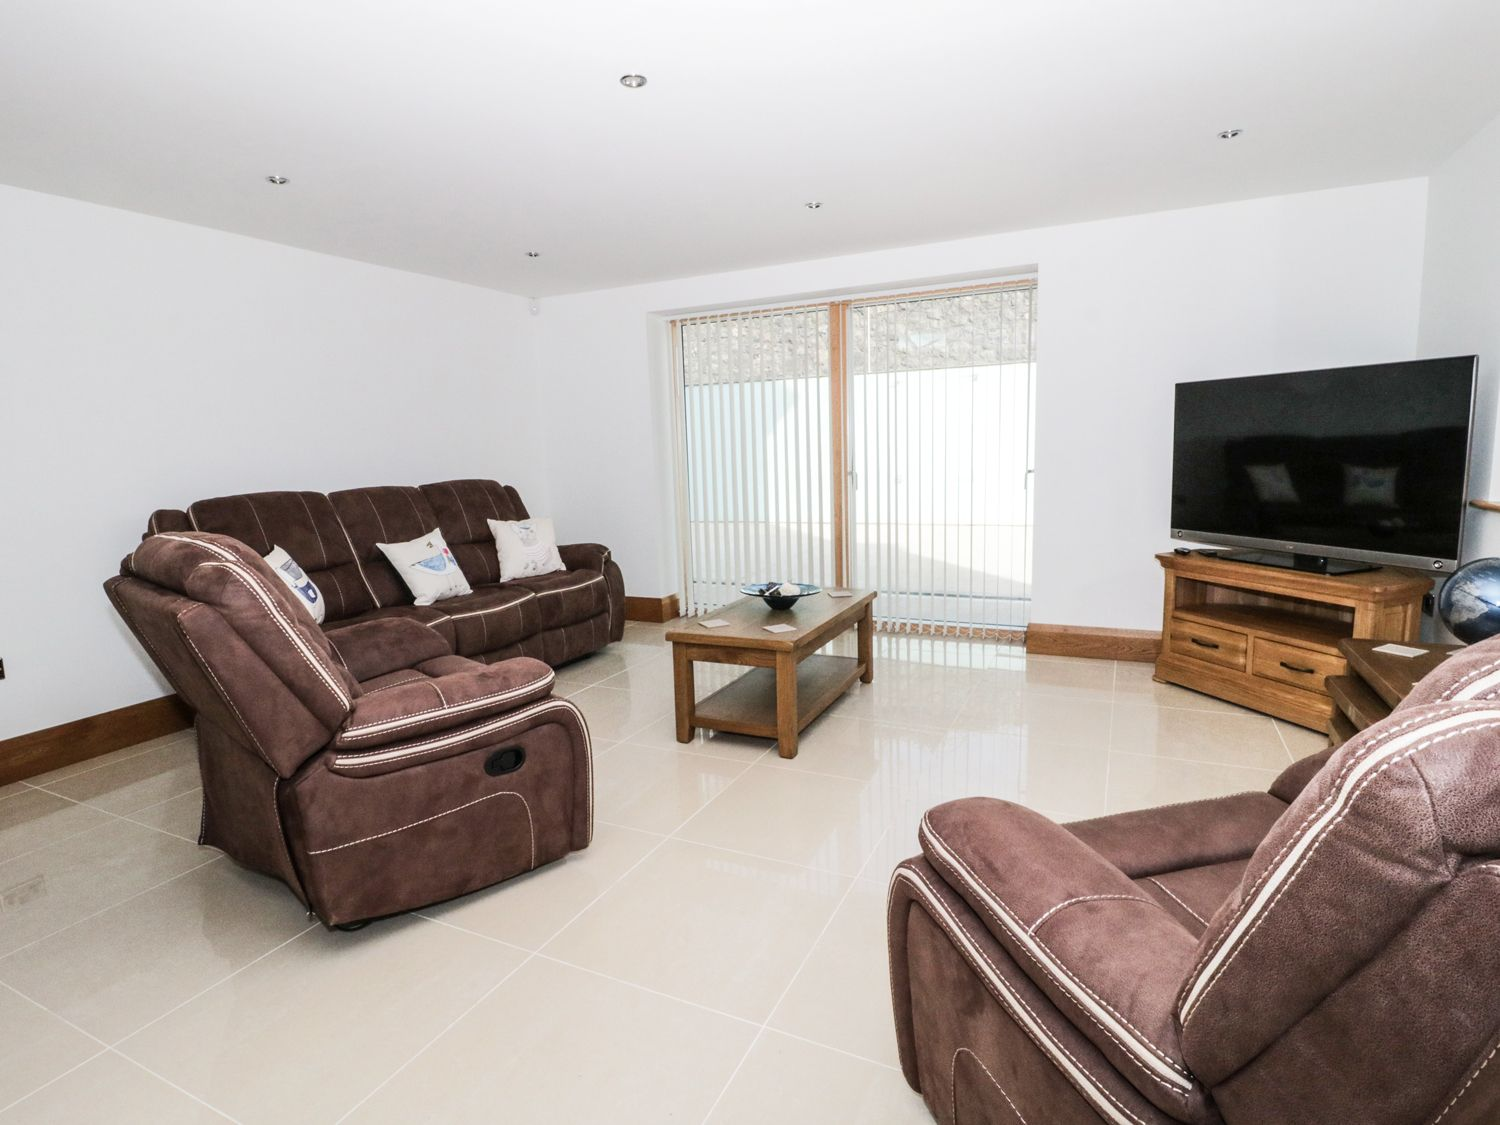 Beach House Apartment in Benllech - sleeps 4 people